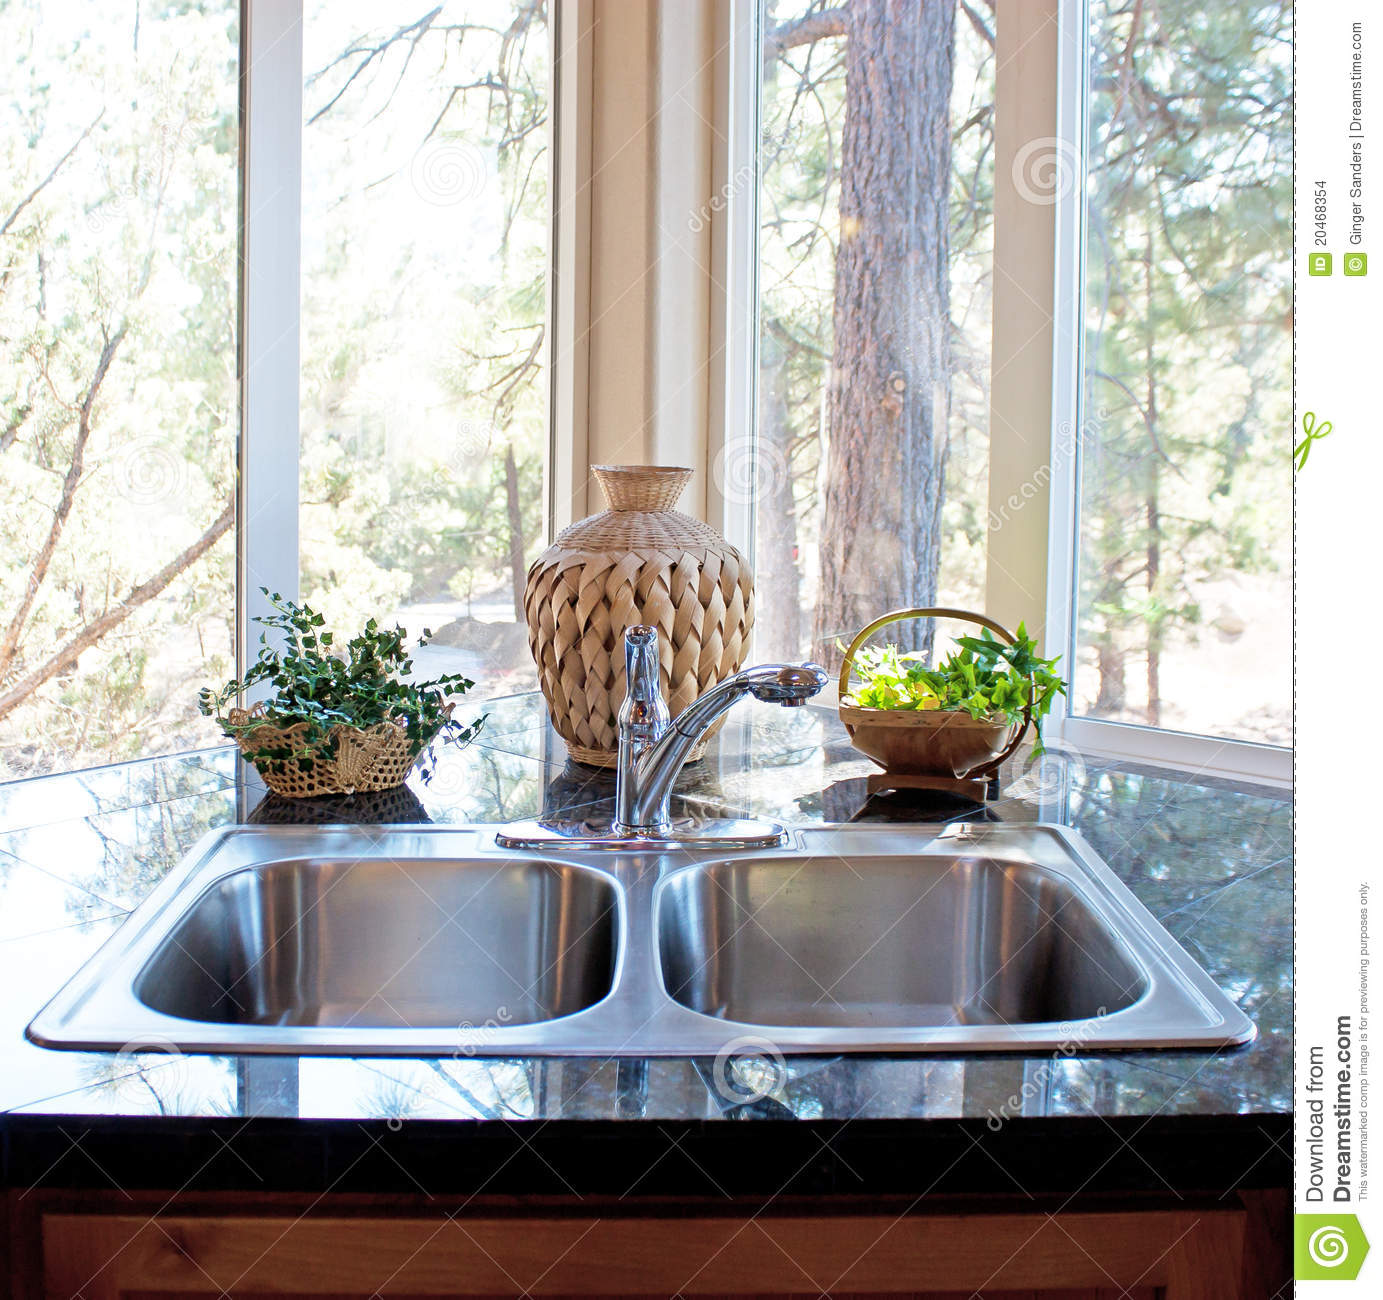 Natural Lighting Stainless Kitchen Window And Sink Stock Photo